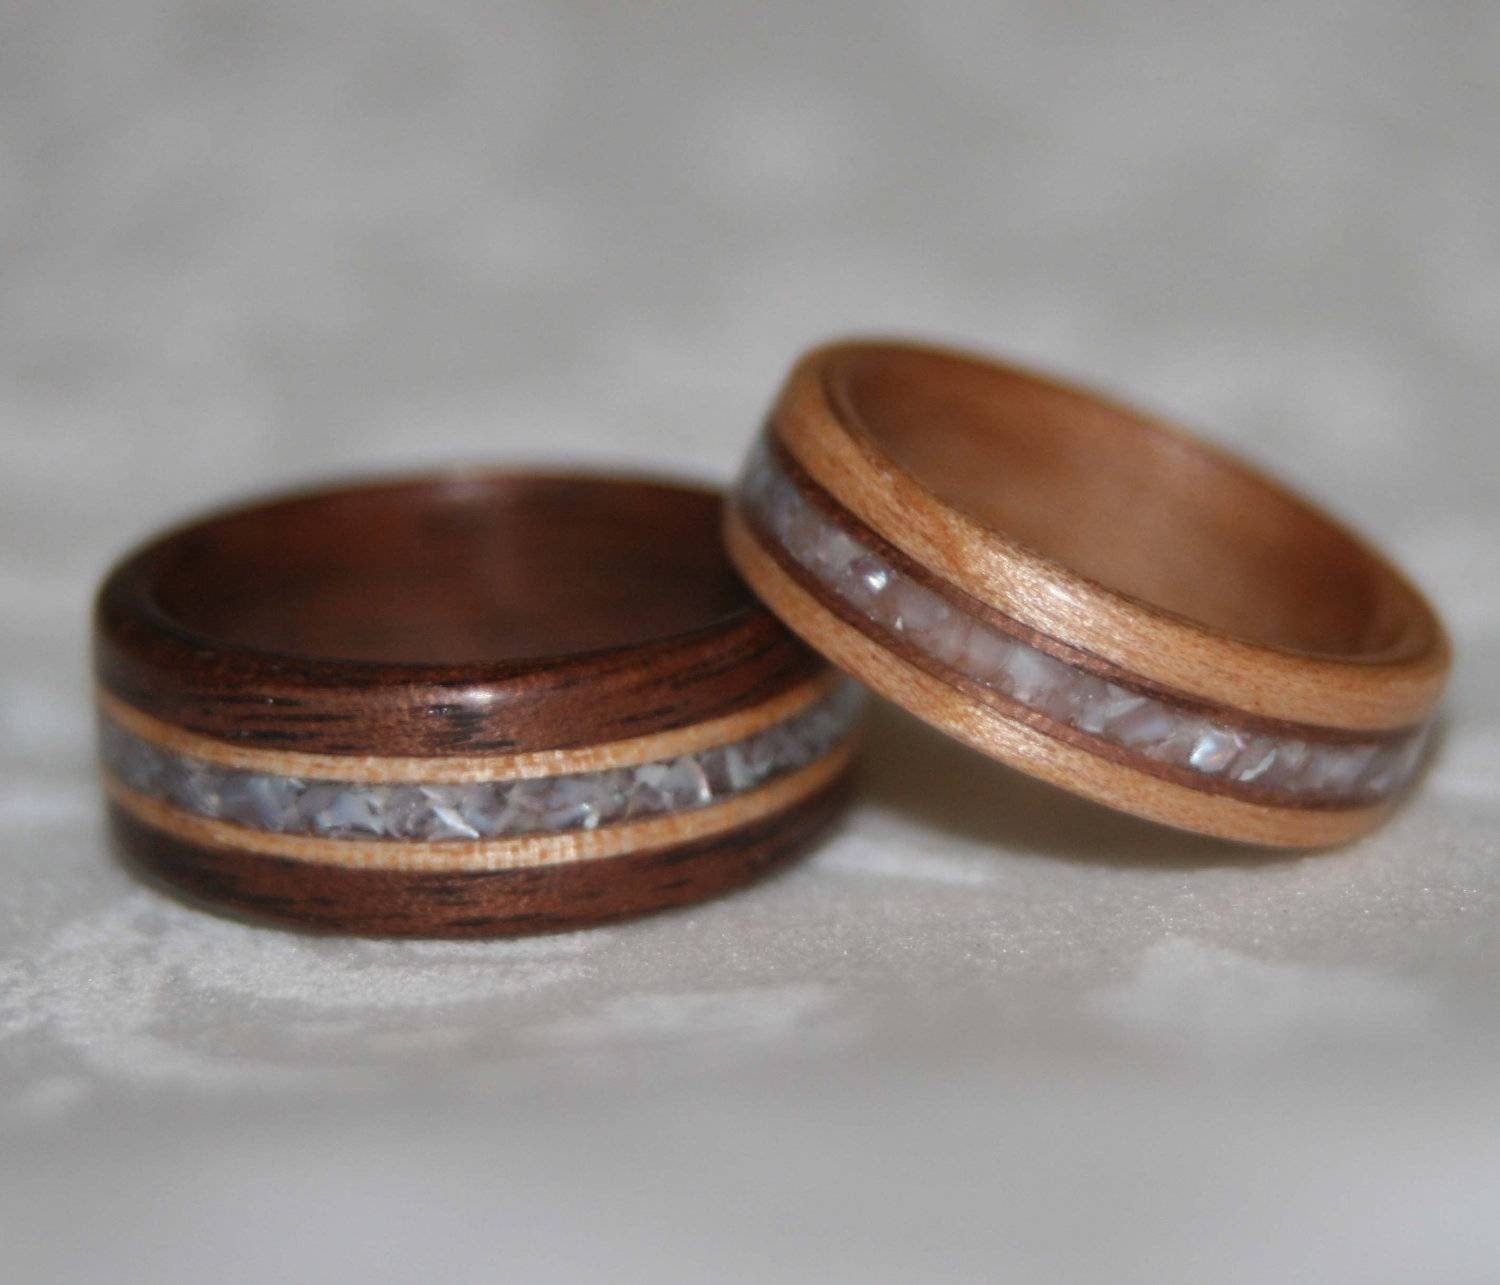 Set Of Custom Wooden Wedding Bands With Wood Accents And Stone Intended For Wood Wedding Bands (View 11 of 15)